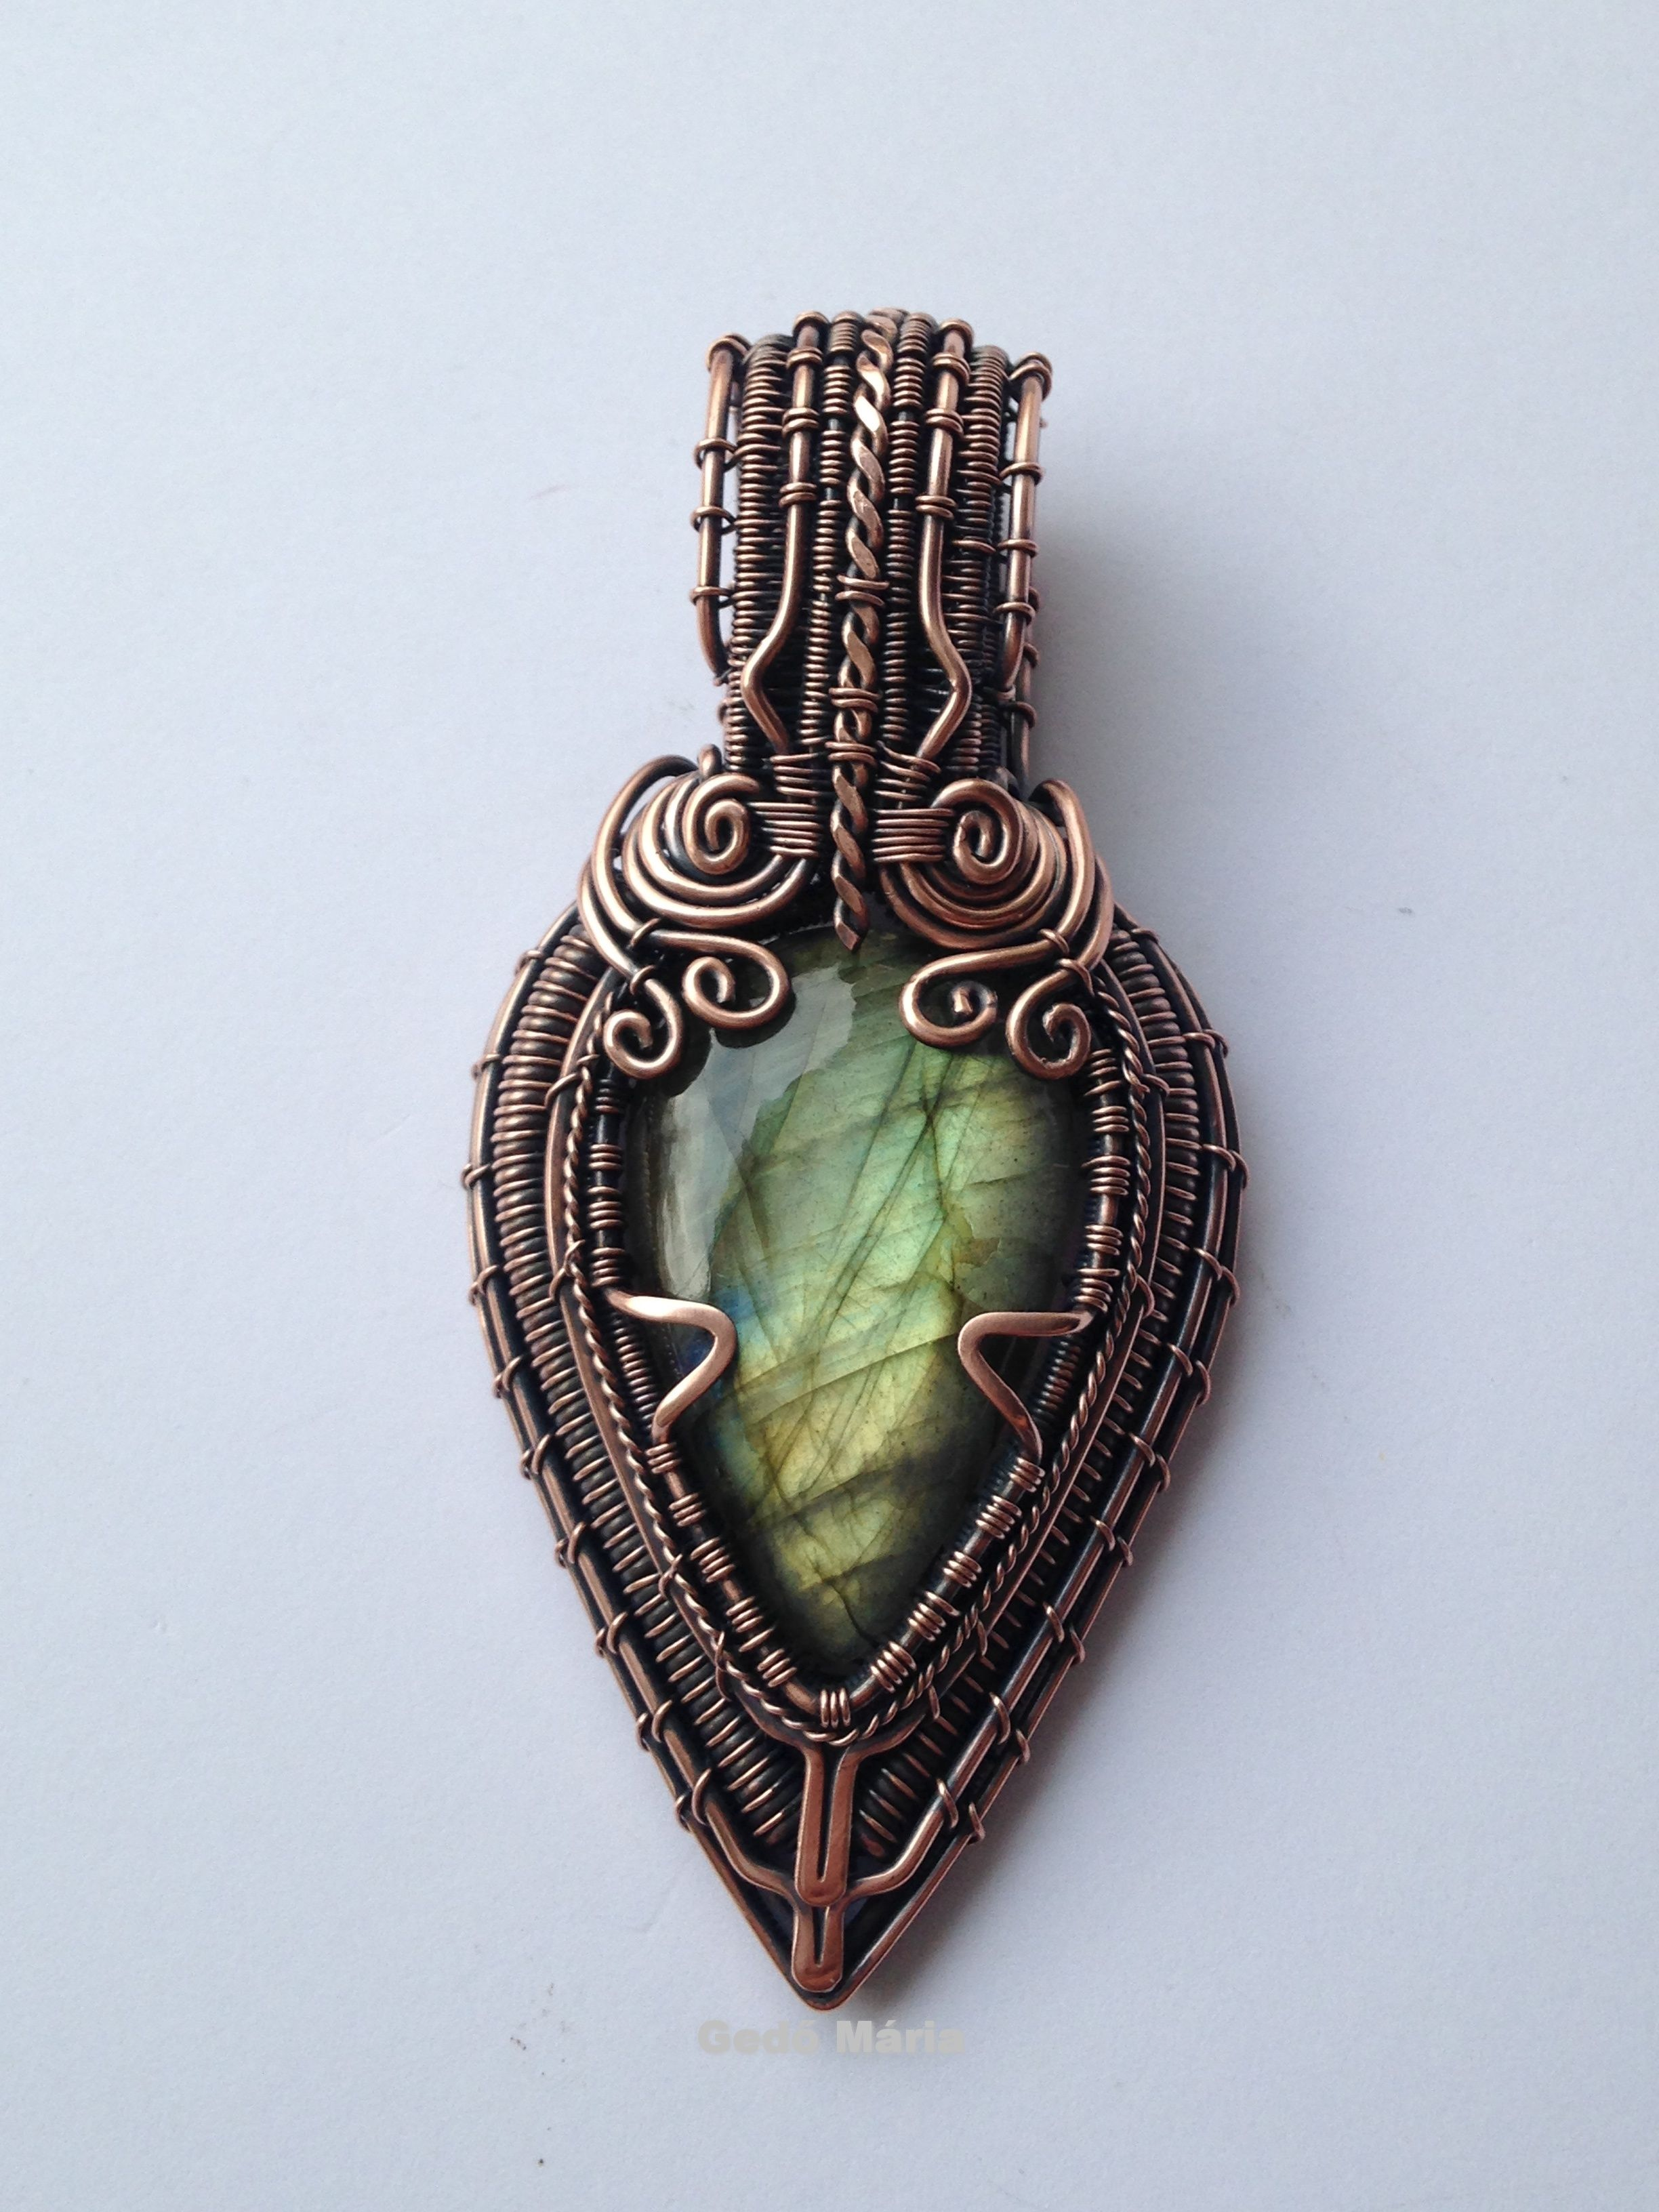 Teardrop labradorite in copper based on Lonely Soldier Designs ...